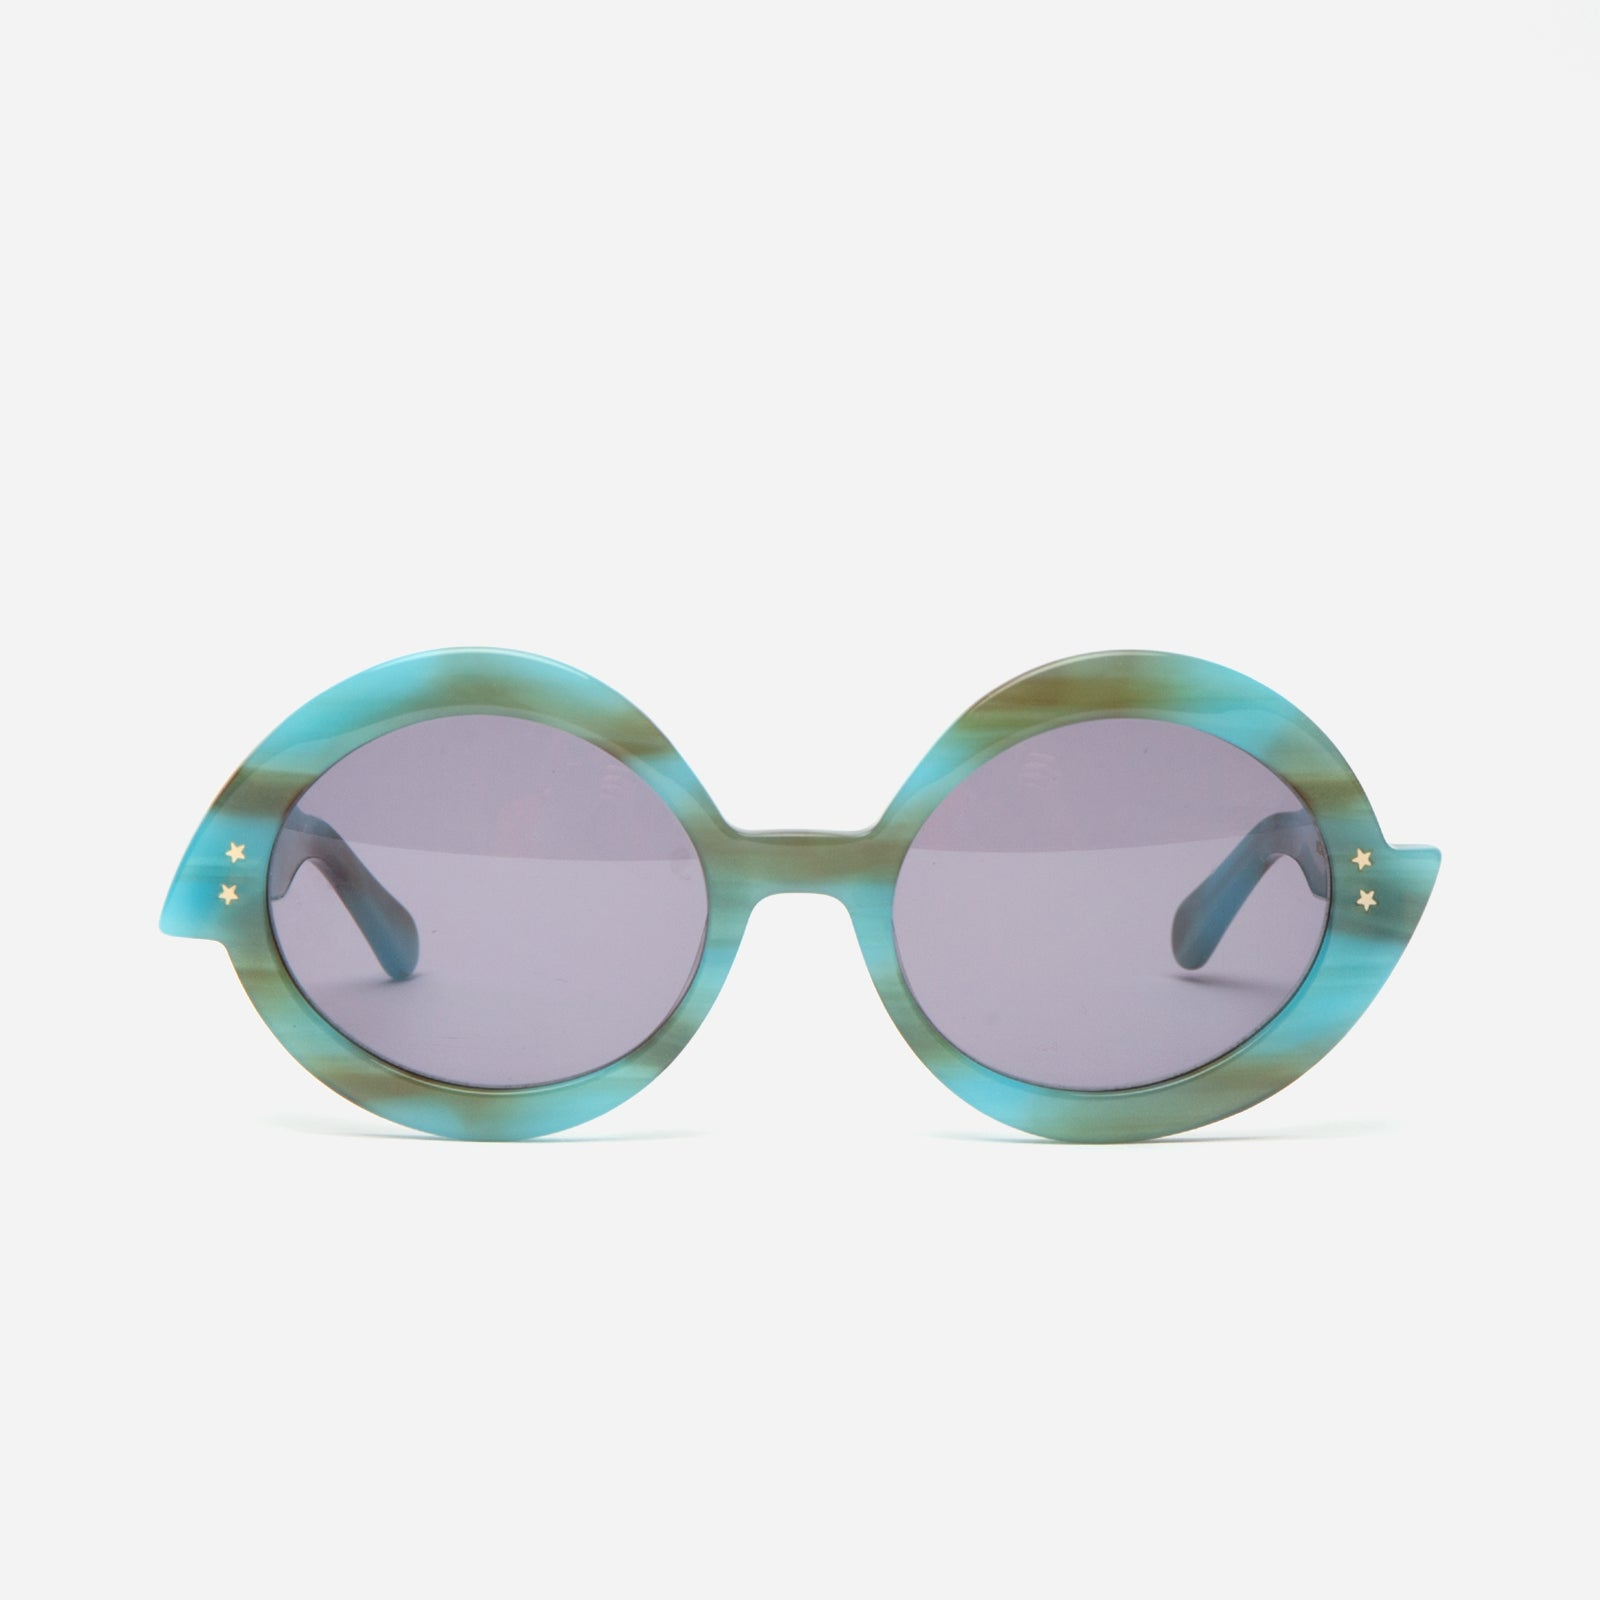 Michelle Sunglasses Aqua - Frances Valentine